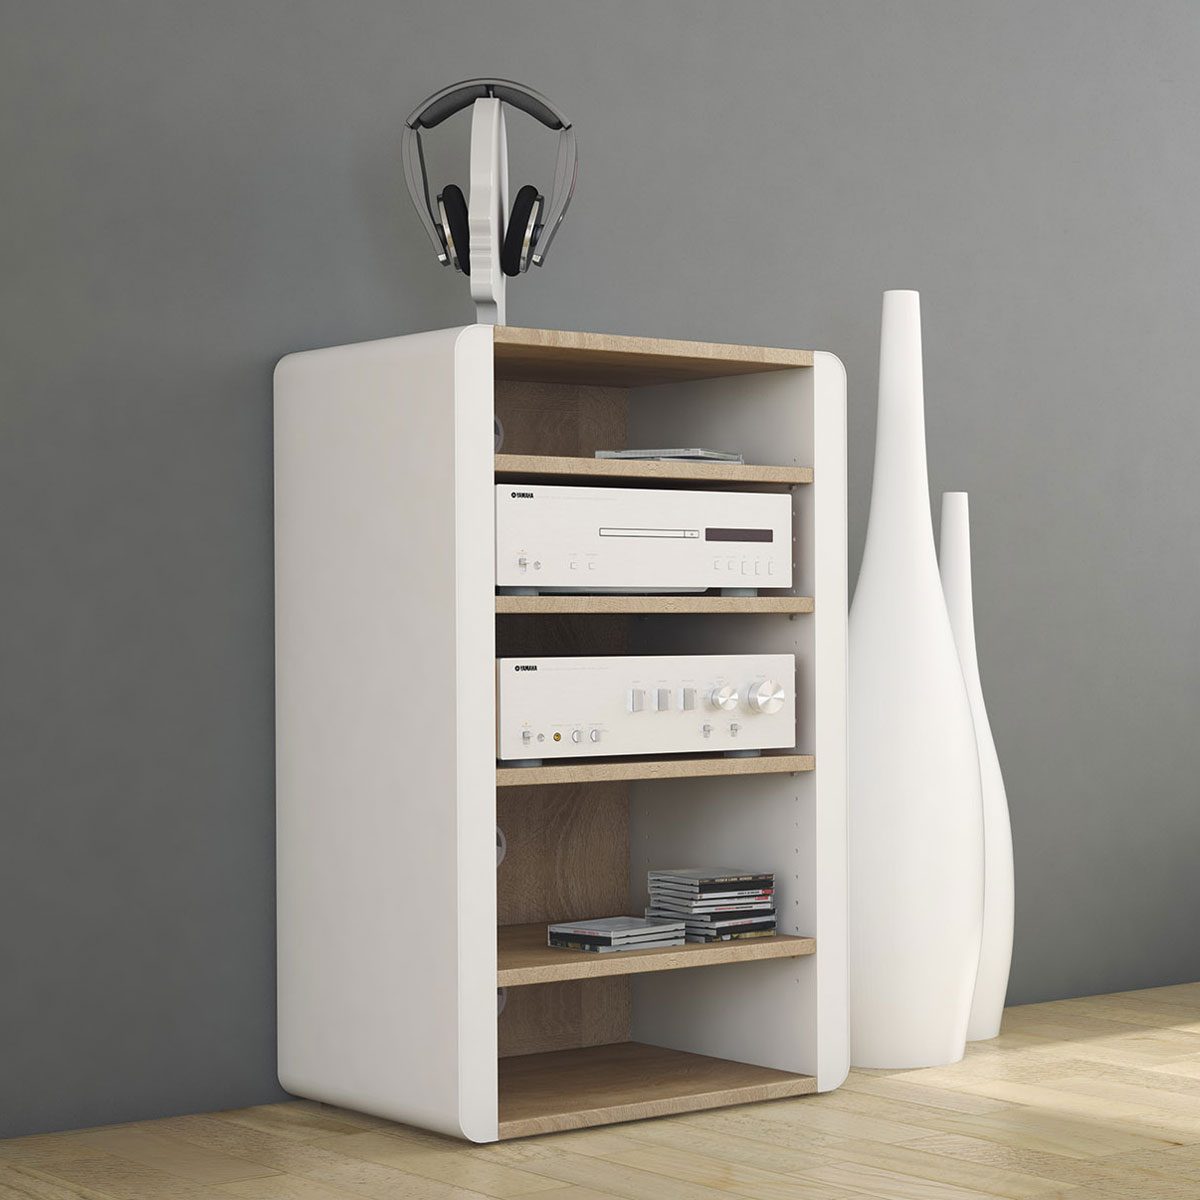 Regal Nussbaum Schnepel Elf-line Hifi-rack